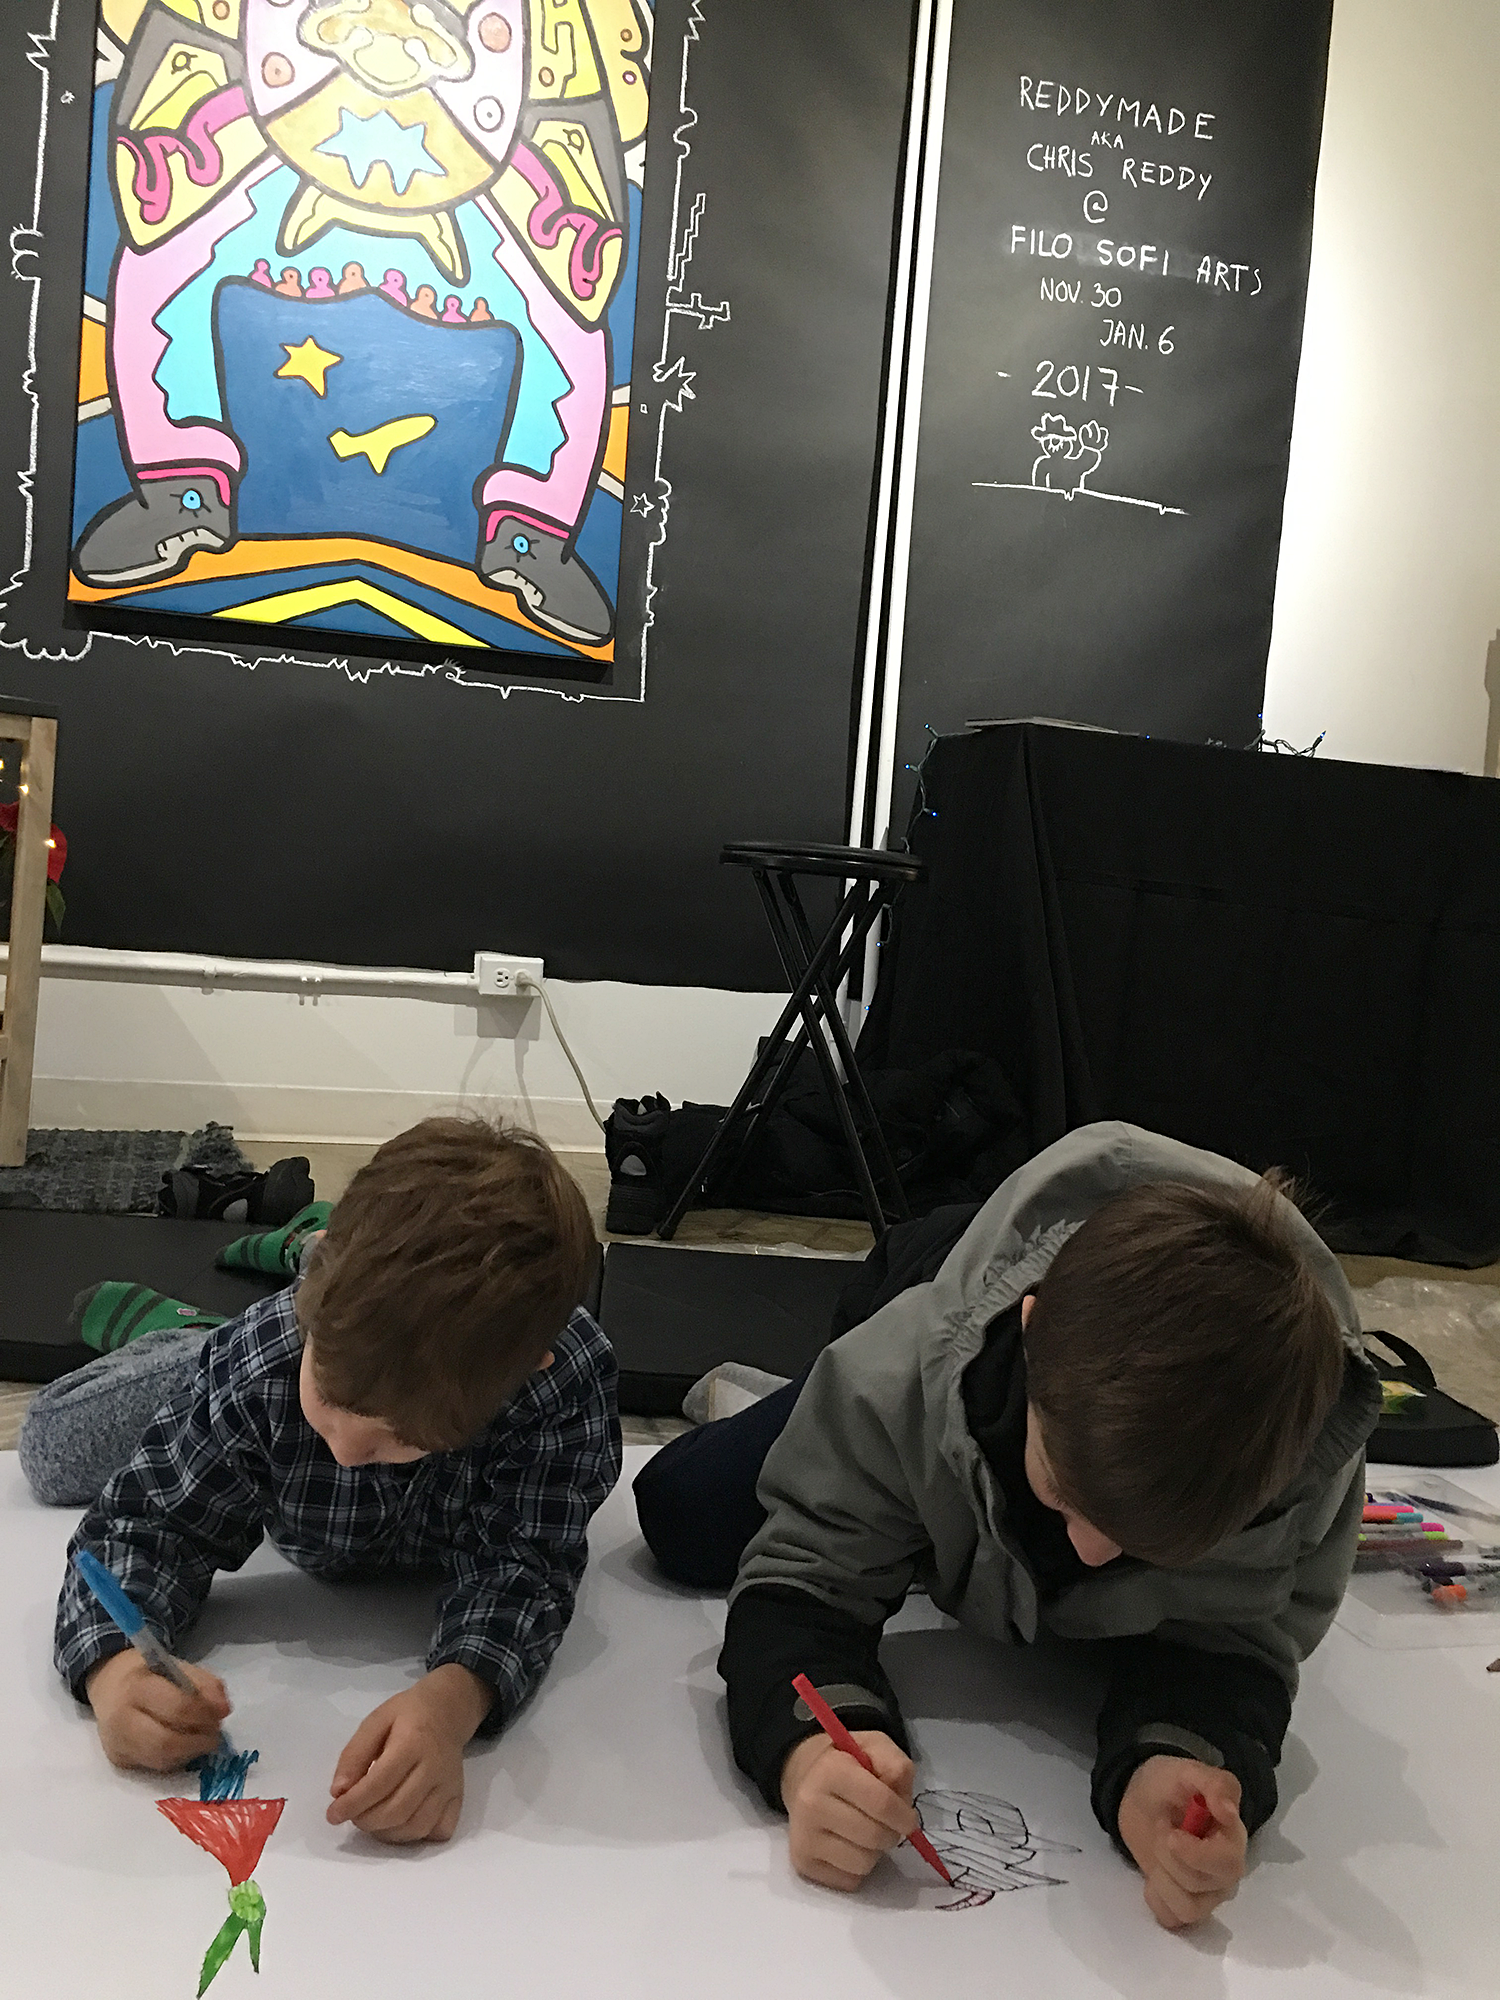 Children drawing with artist Chriss Reddy at Filo Sofi Arts